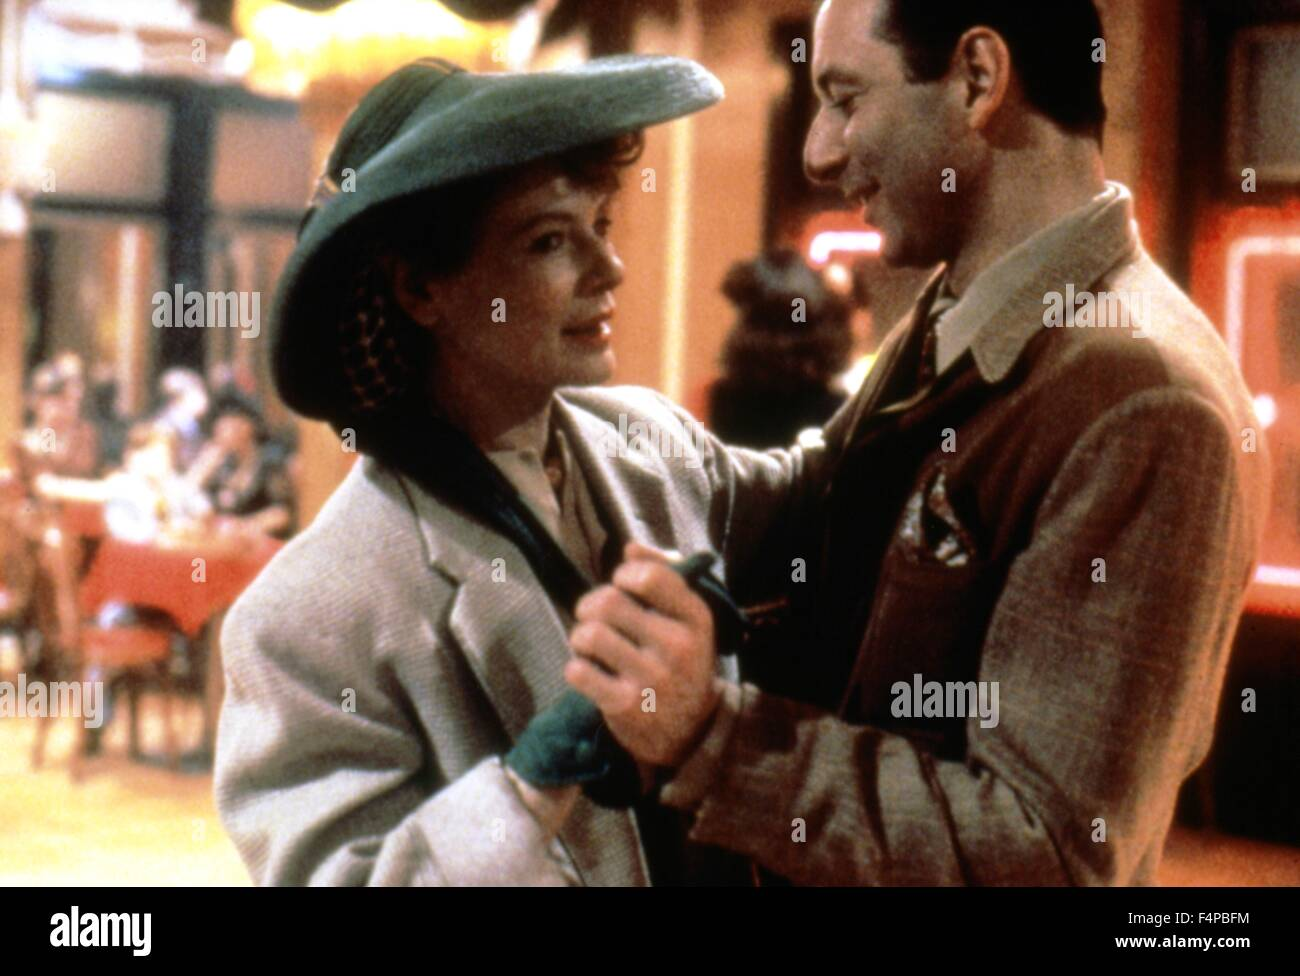 Diane Wiest, Tony Roberts / Radio Days 1987 directed by Woody Allen - Stock Image